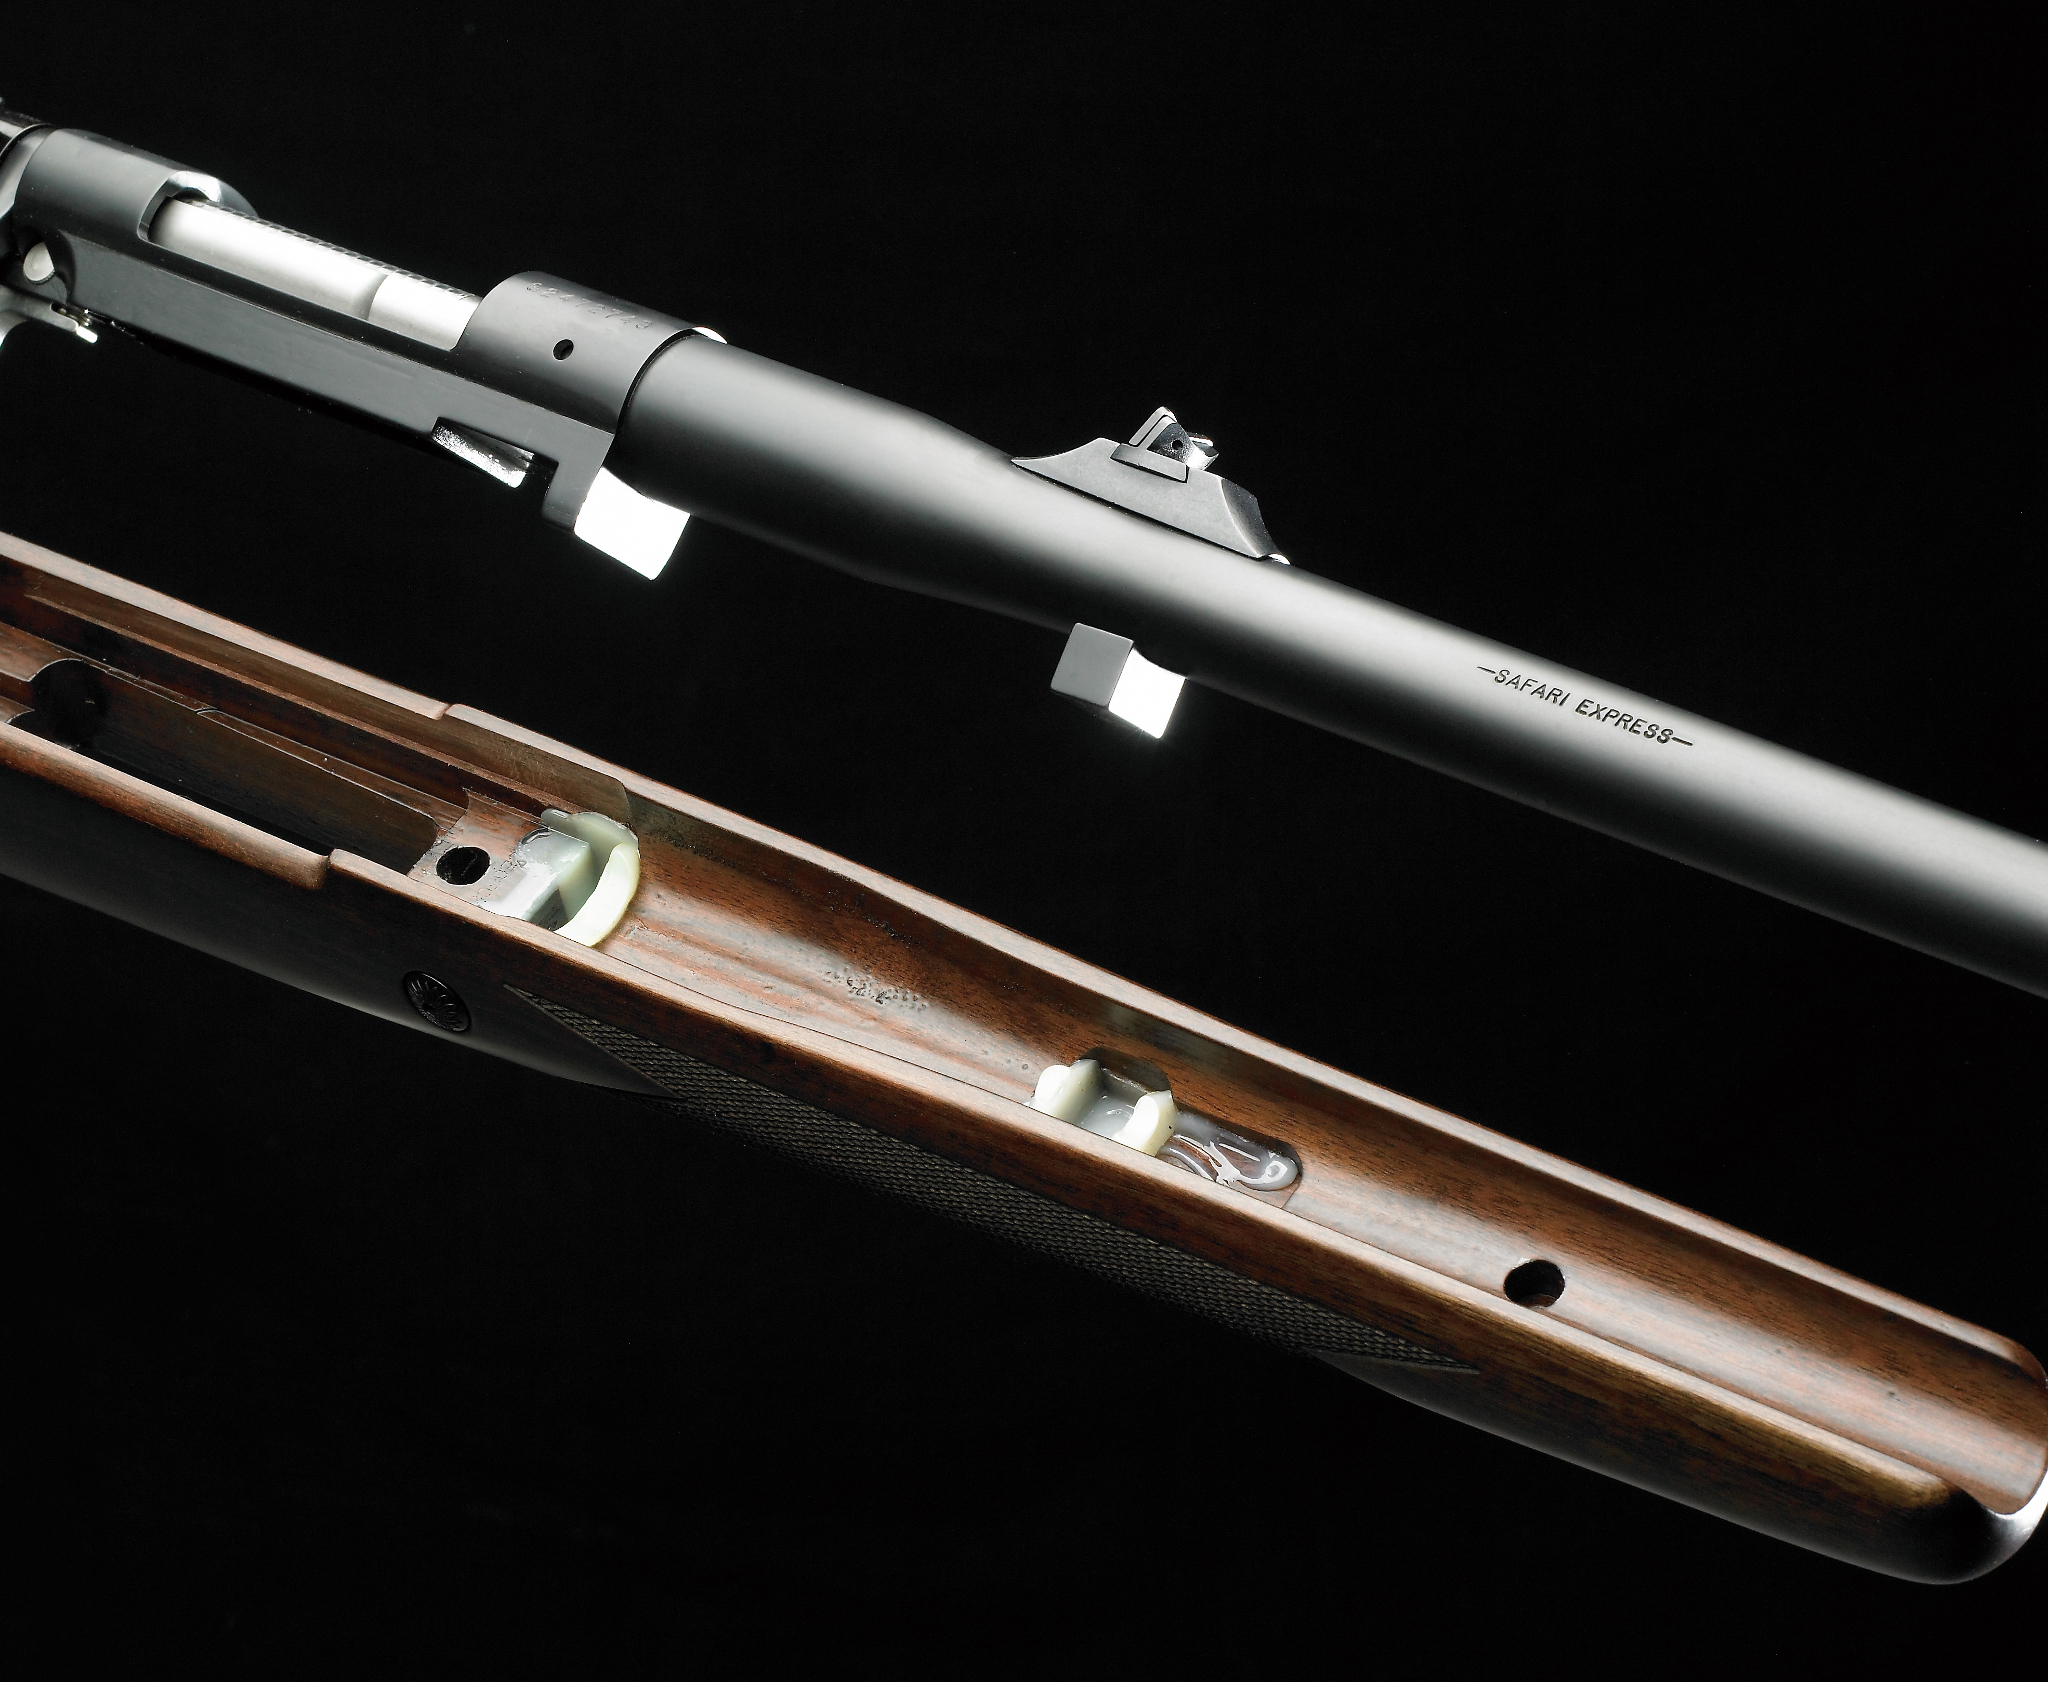 Twin recoil lug bedding system for the Winchester Model 70 Safari Express rifle